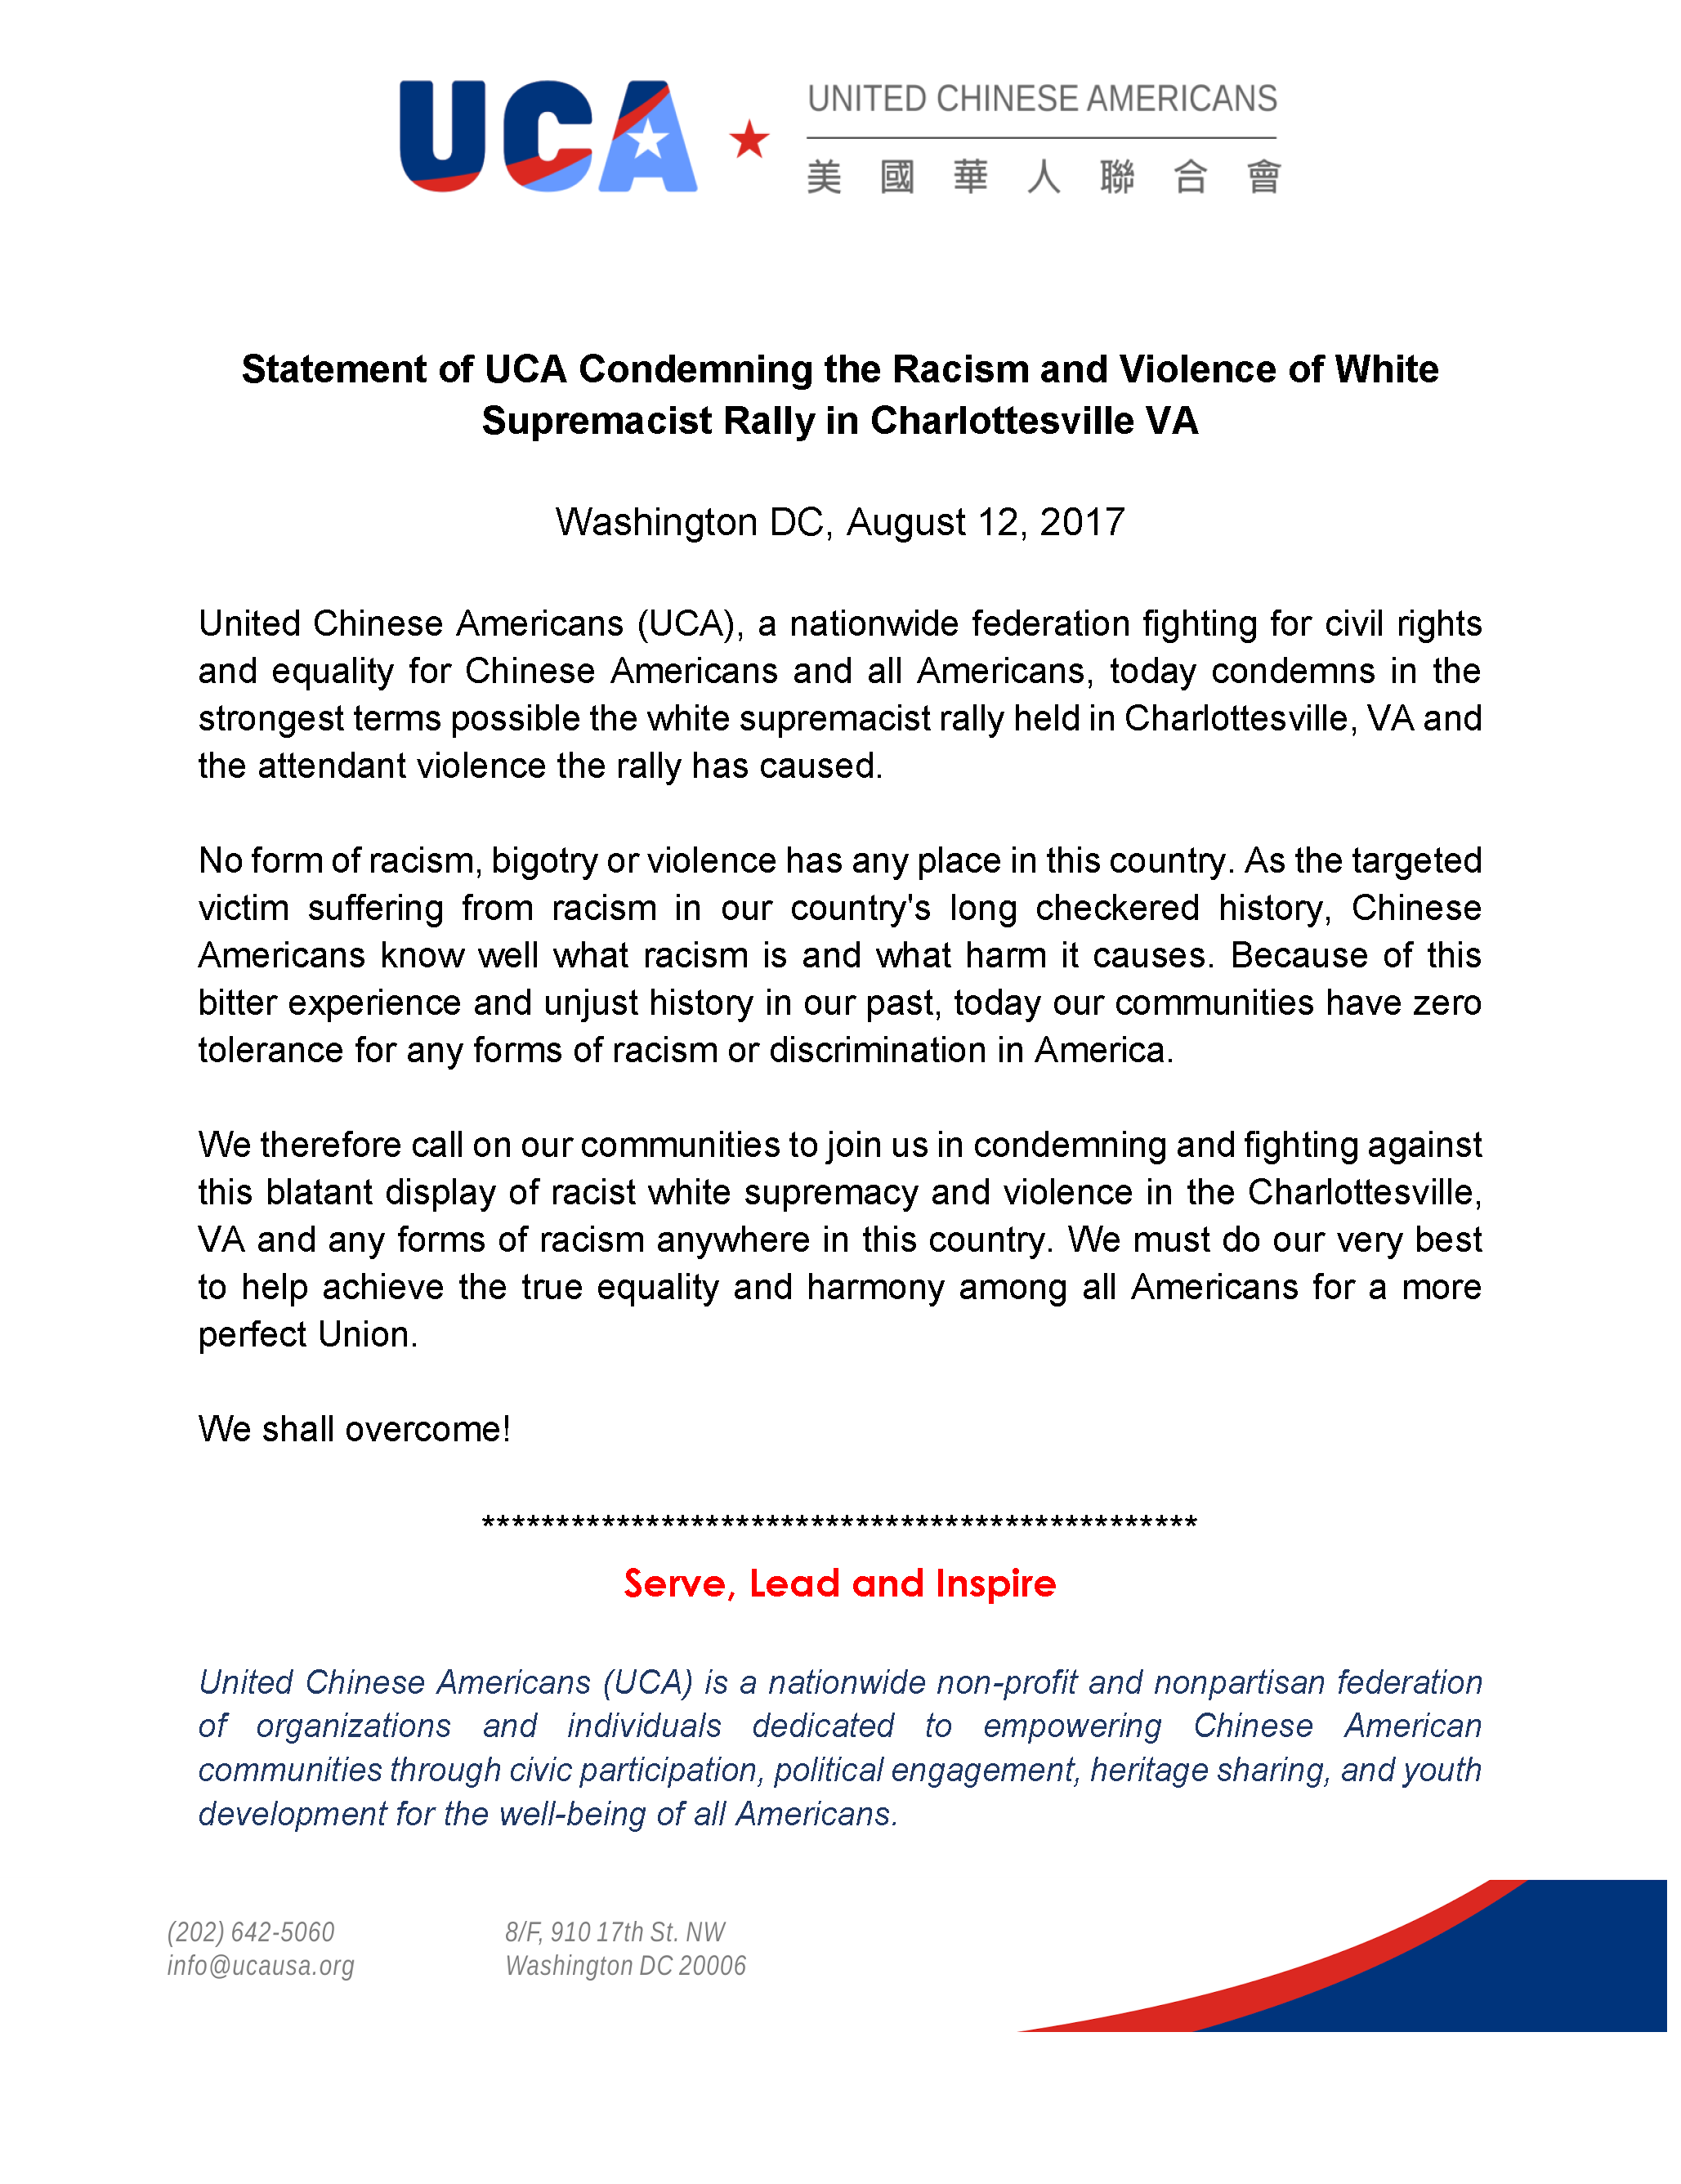 Statement of UCA Condemning the Racism and Violence Rally in VA